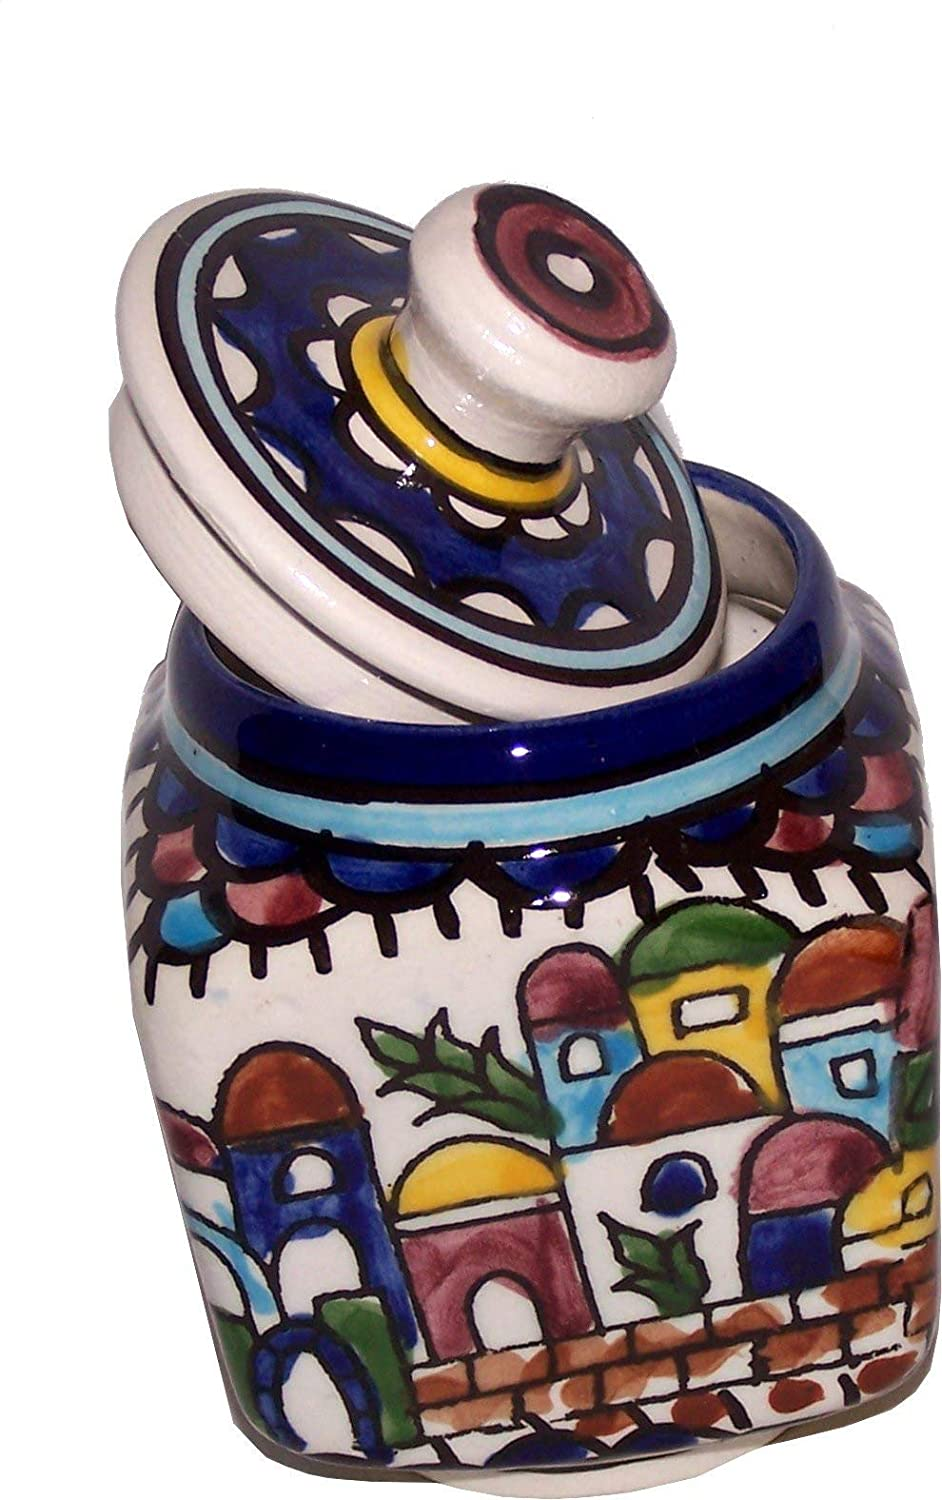 Jerusalem Sugar Pot - Square - Ceramic painted by hand (4 Inches) - Old City Panorama or view - Asfour Outlet Trademark